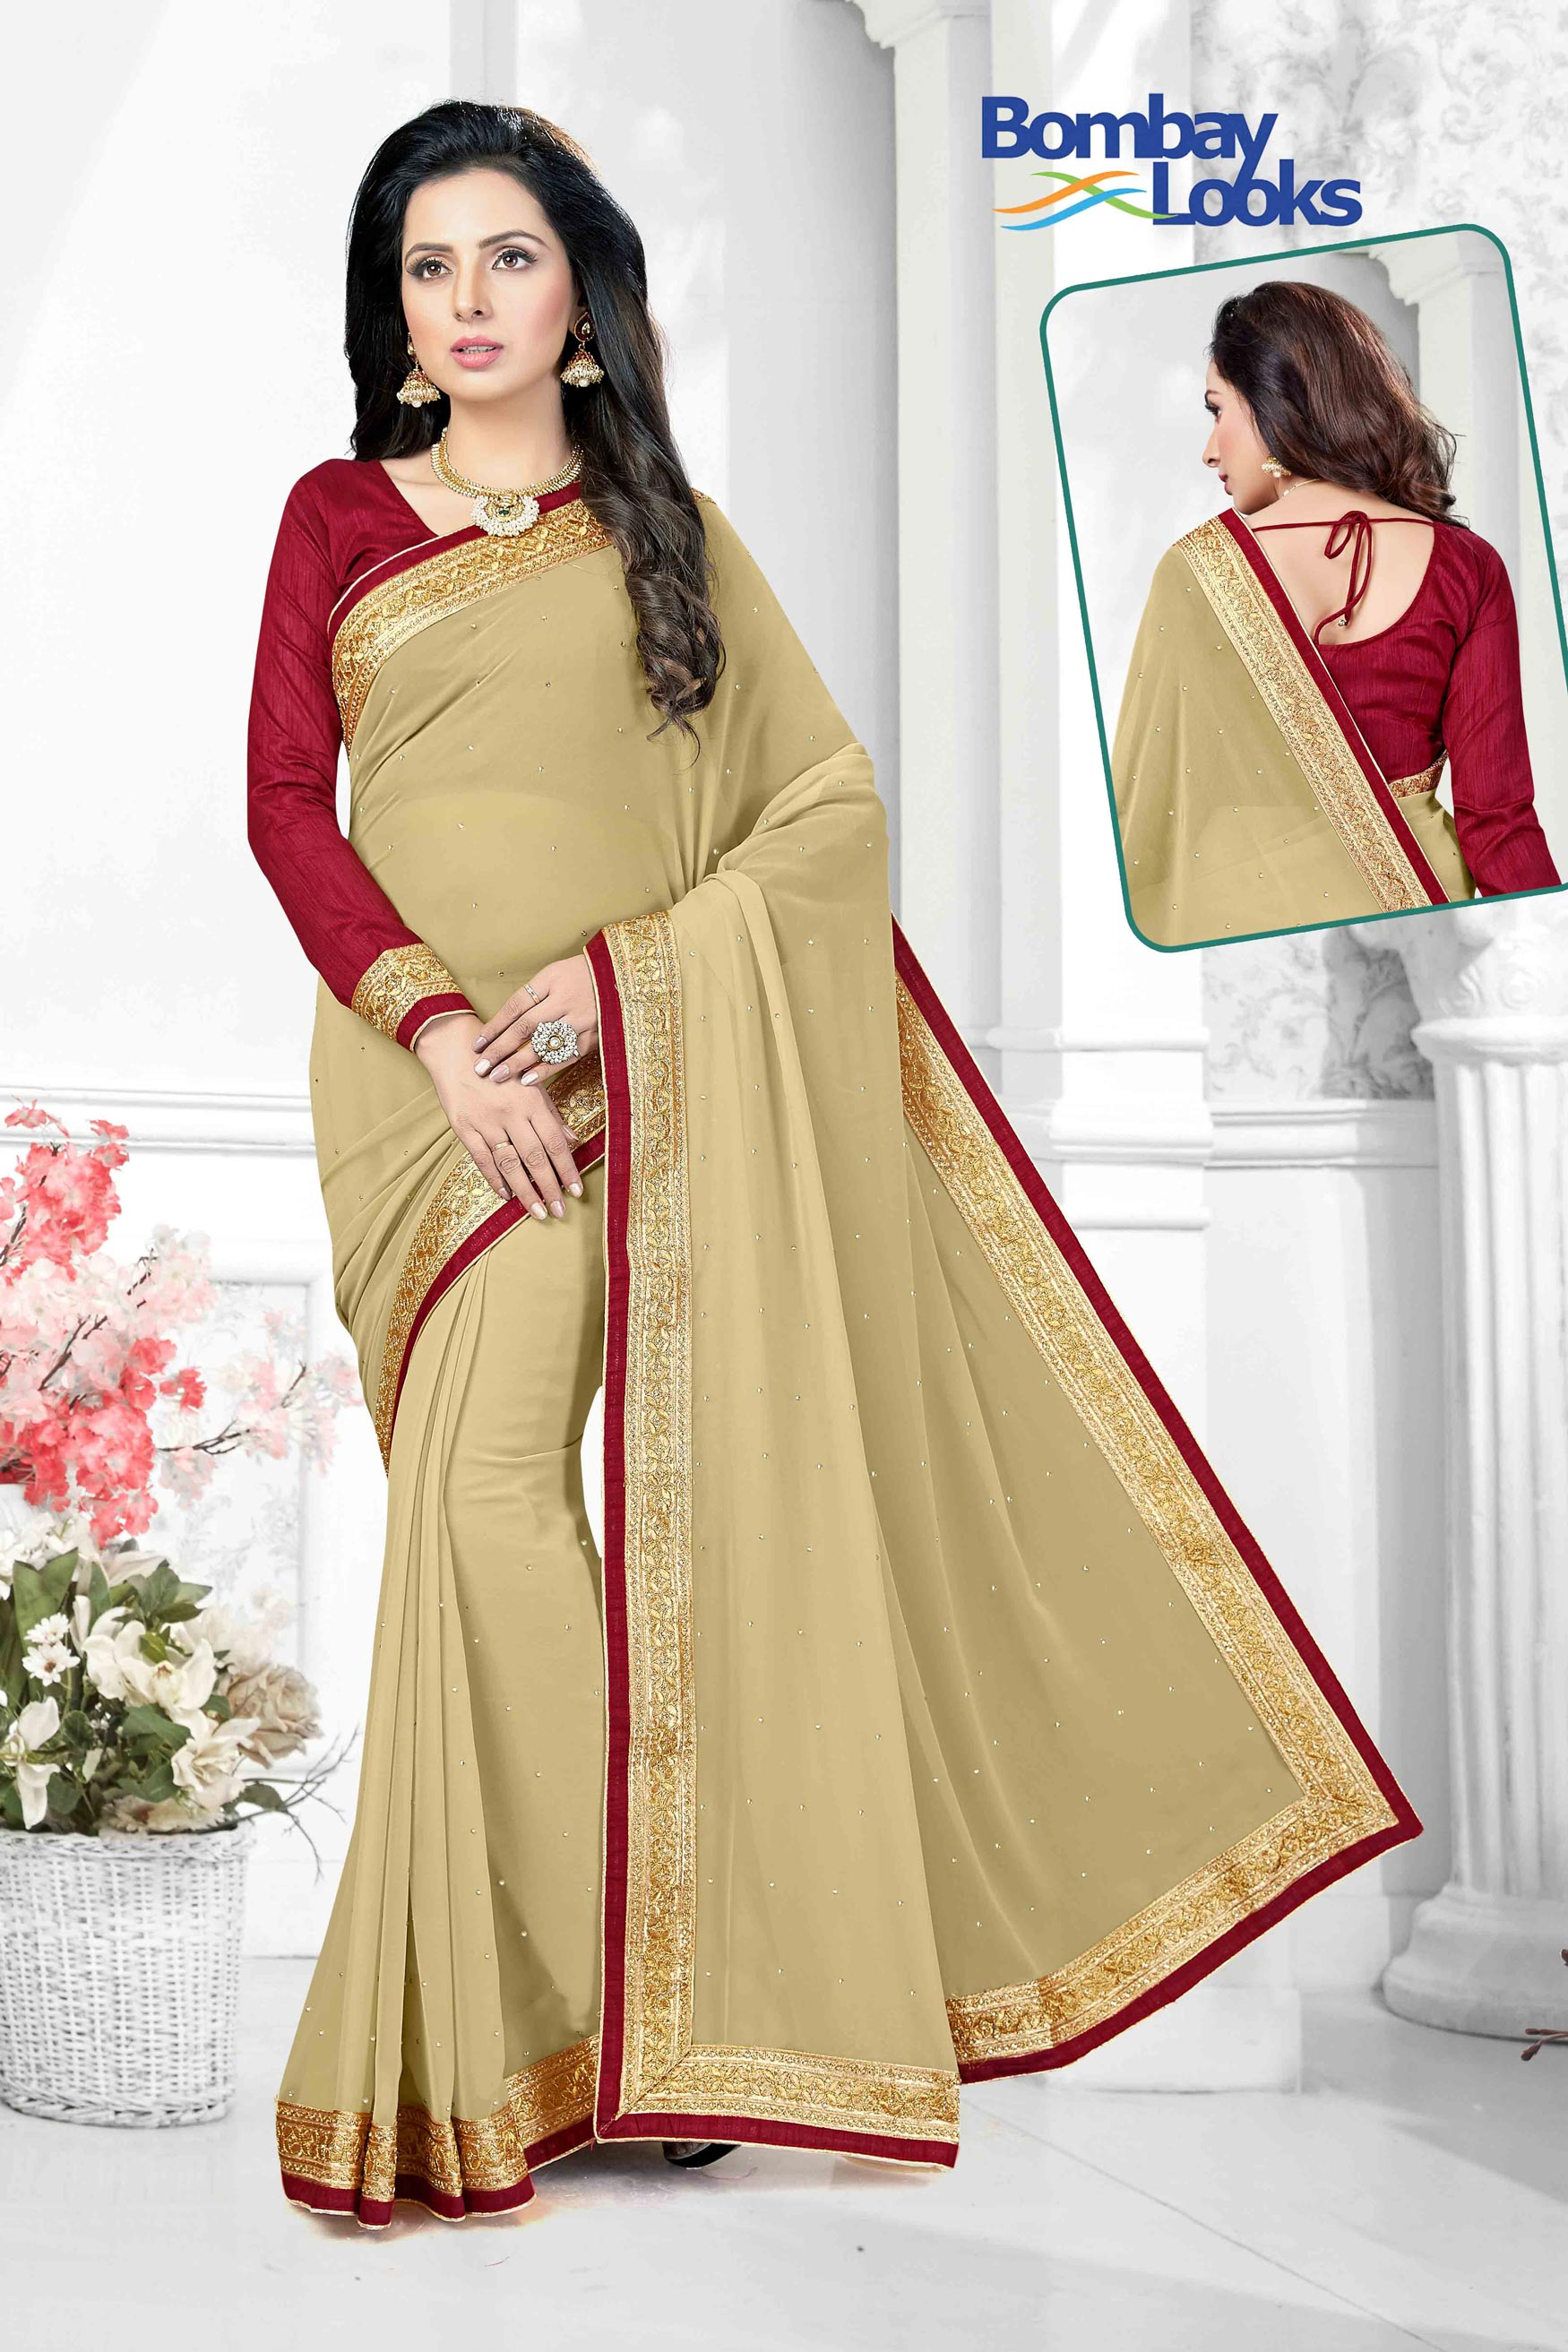 Classic Light Tan georgette saree with elegant gold border